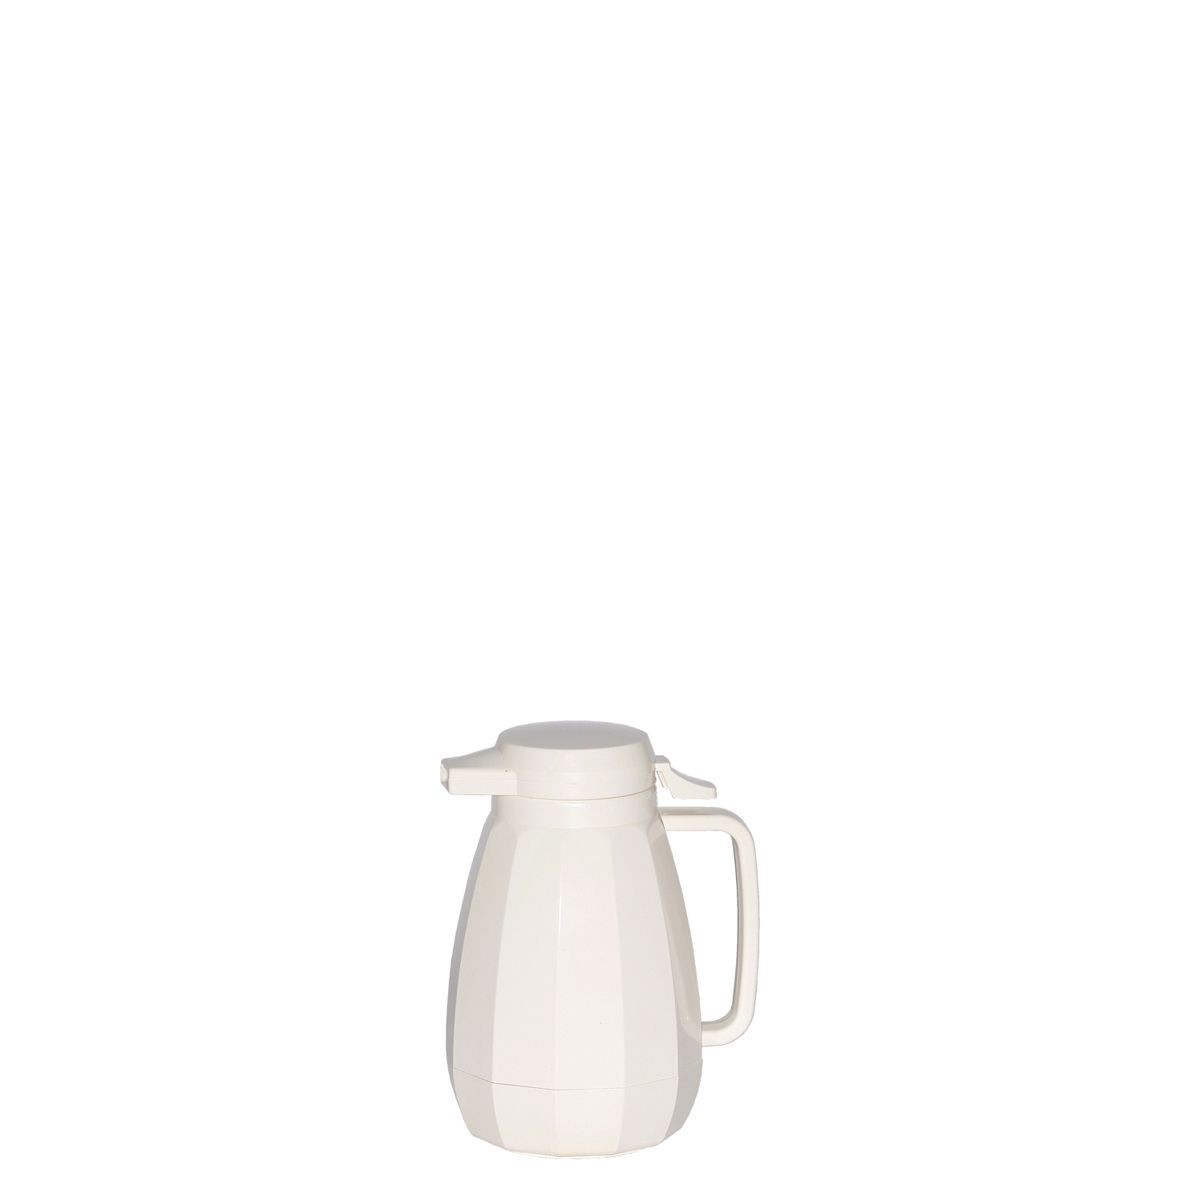 Service Ideas NG501WH New Generation White Coffee Server, 0.6 Liter (20 oz.)